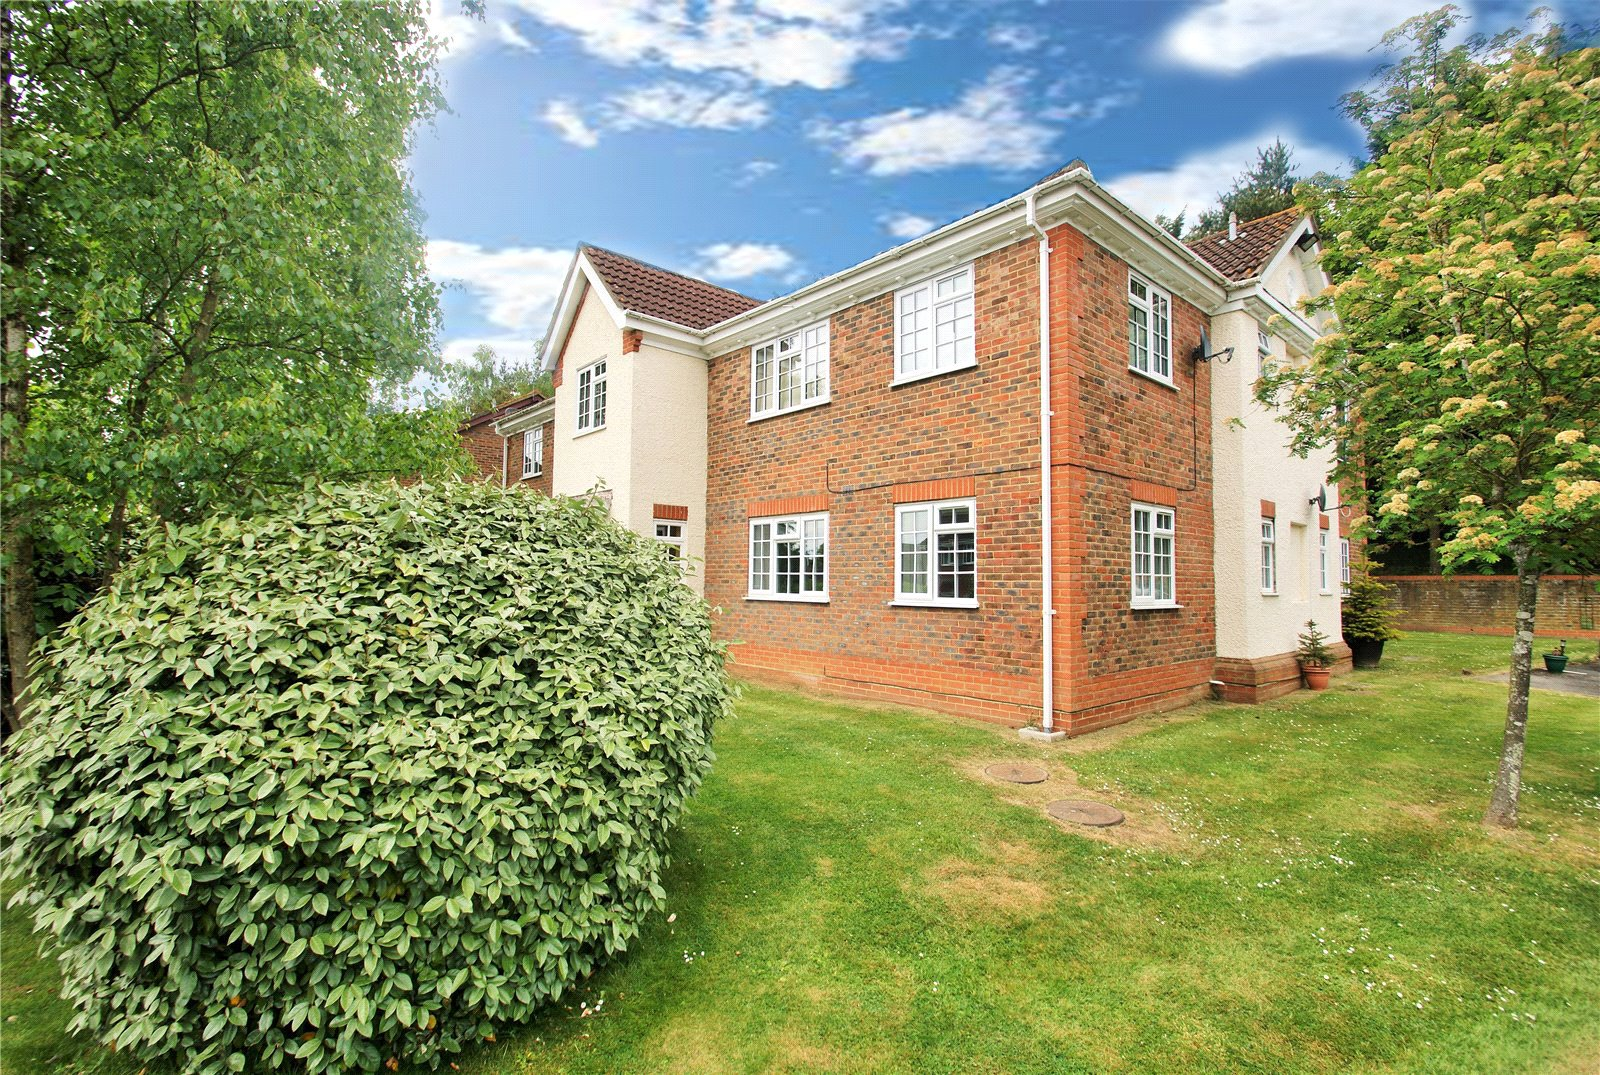 1 Bedroom Apartment Flat for sale in Dodsells Well, Finchampstead, Berkshire, RG40